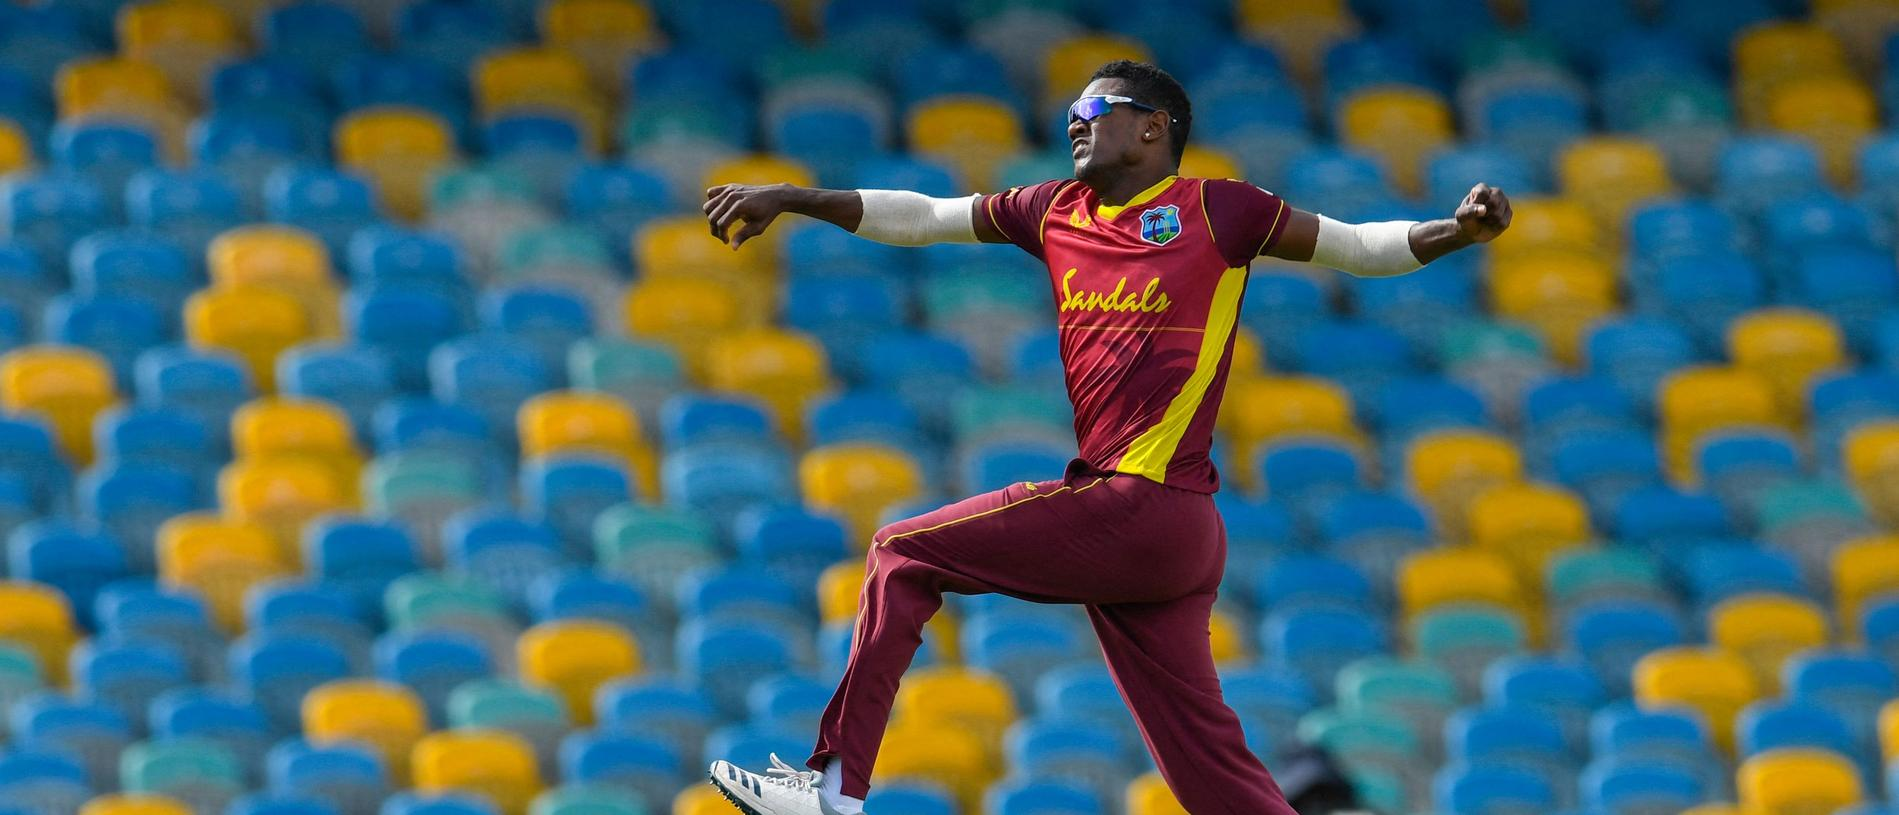 Akeal Hosein of the West Indies celebrates the dismissal of Alex Carey of Australia during the 2nd ODI between West Indies and Australia at Kensington Oval, Bridgetown, Barbados, on July 24, 2021. (Photo by Randy Brooks / AFP)